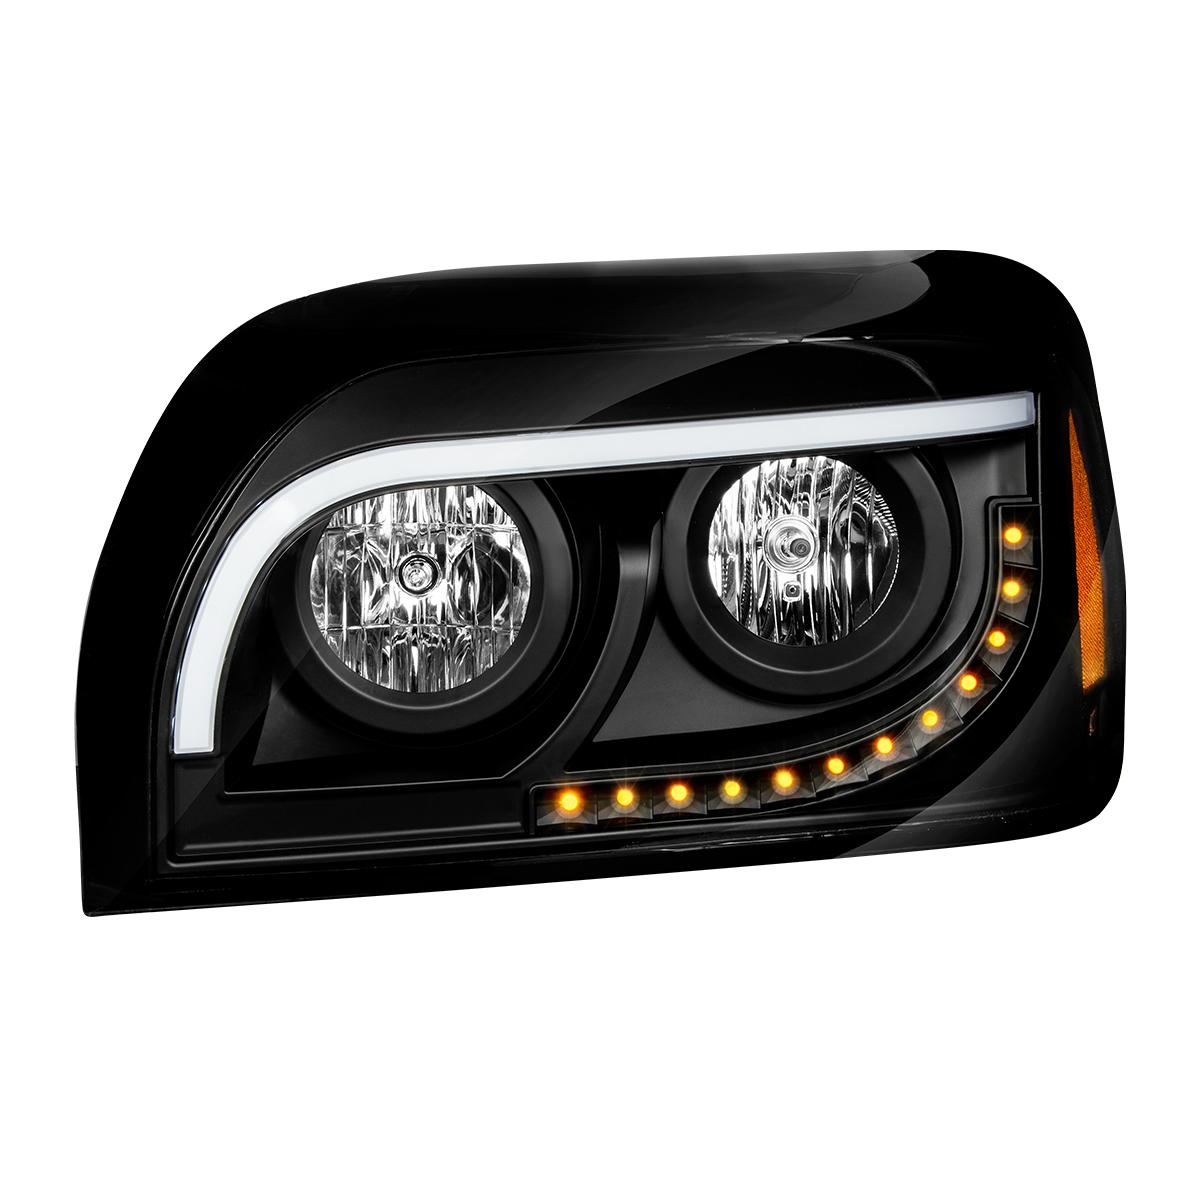 P//S for Freightliner Century 1996-2010 GG Grand General 89423 Black Headlight with LED Signal and Position